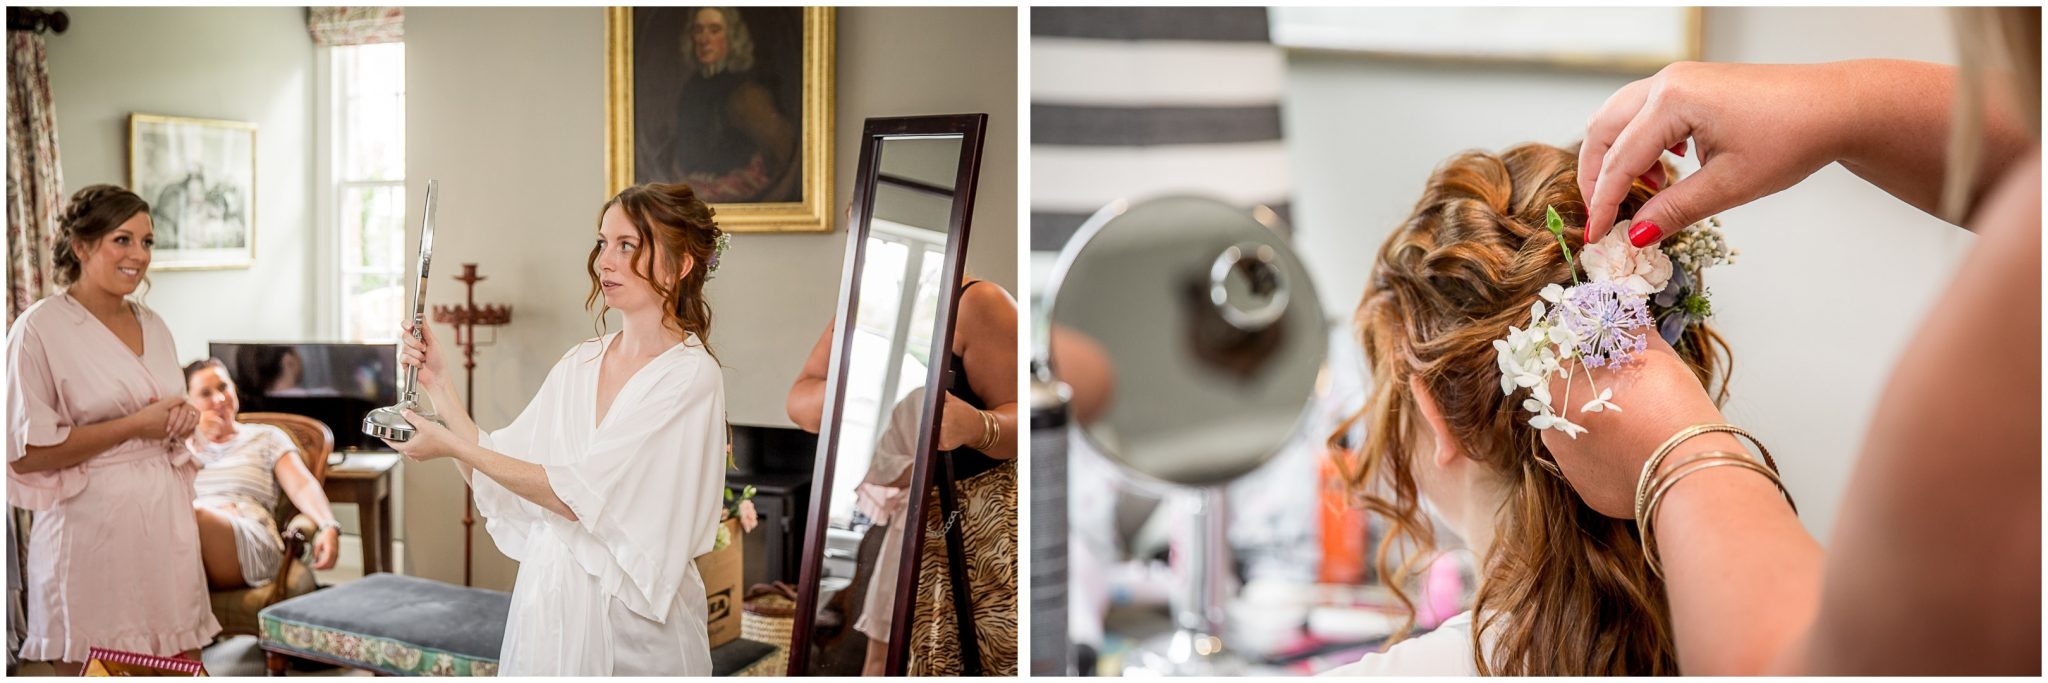 Bridal preparation in the Gate House at Deans Court Dorset wedding venue